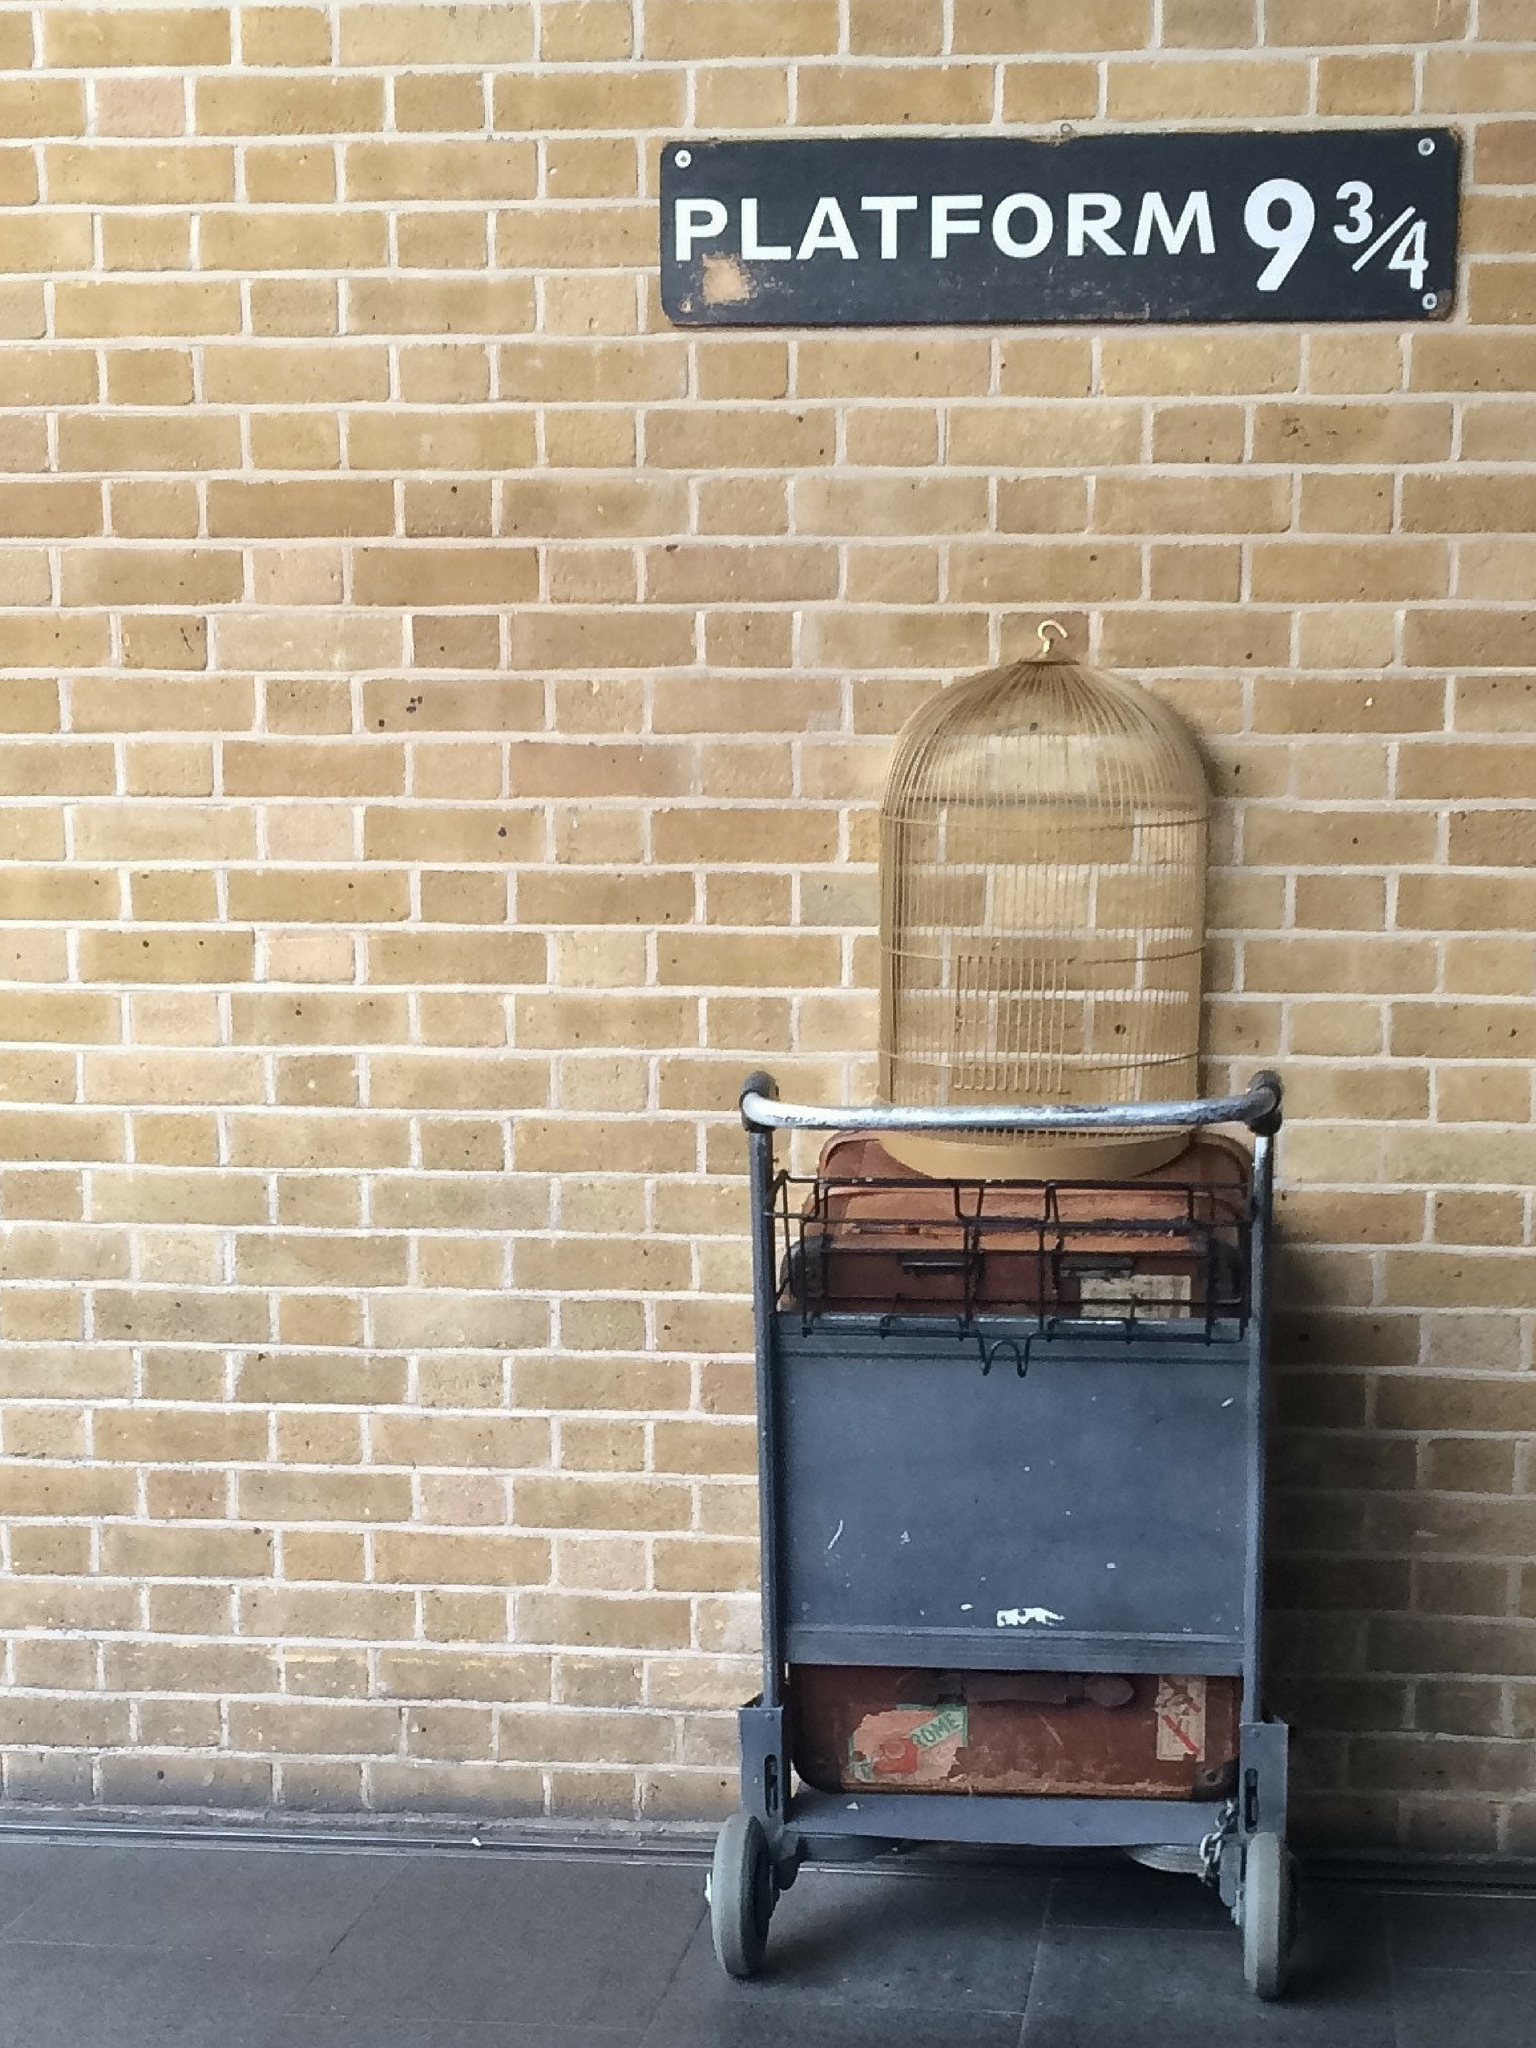 London Harry Potter Locations | WOW